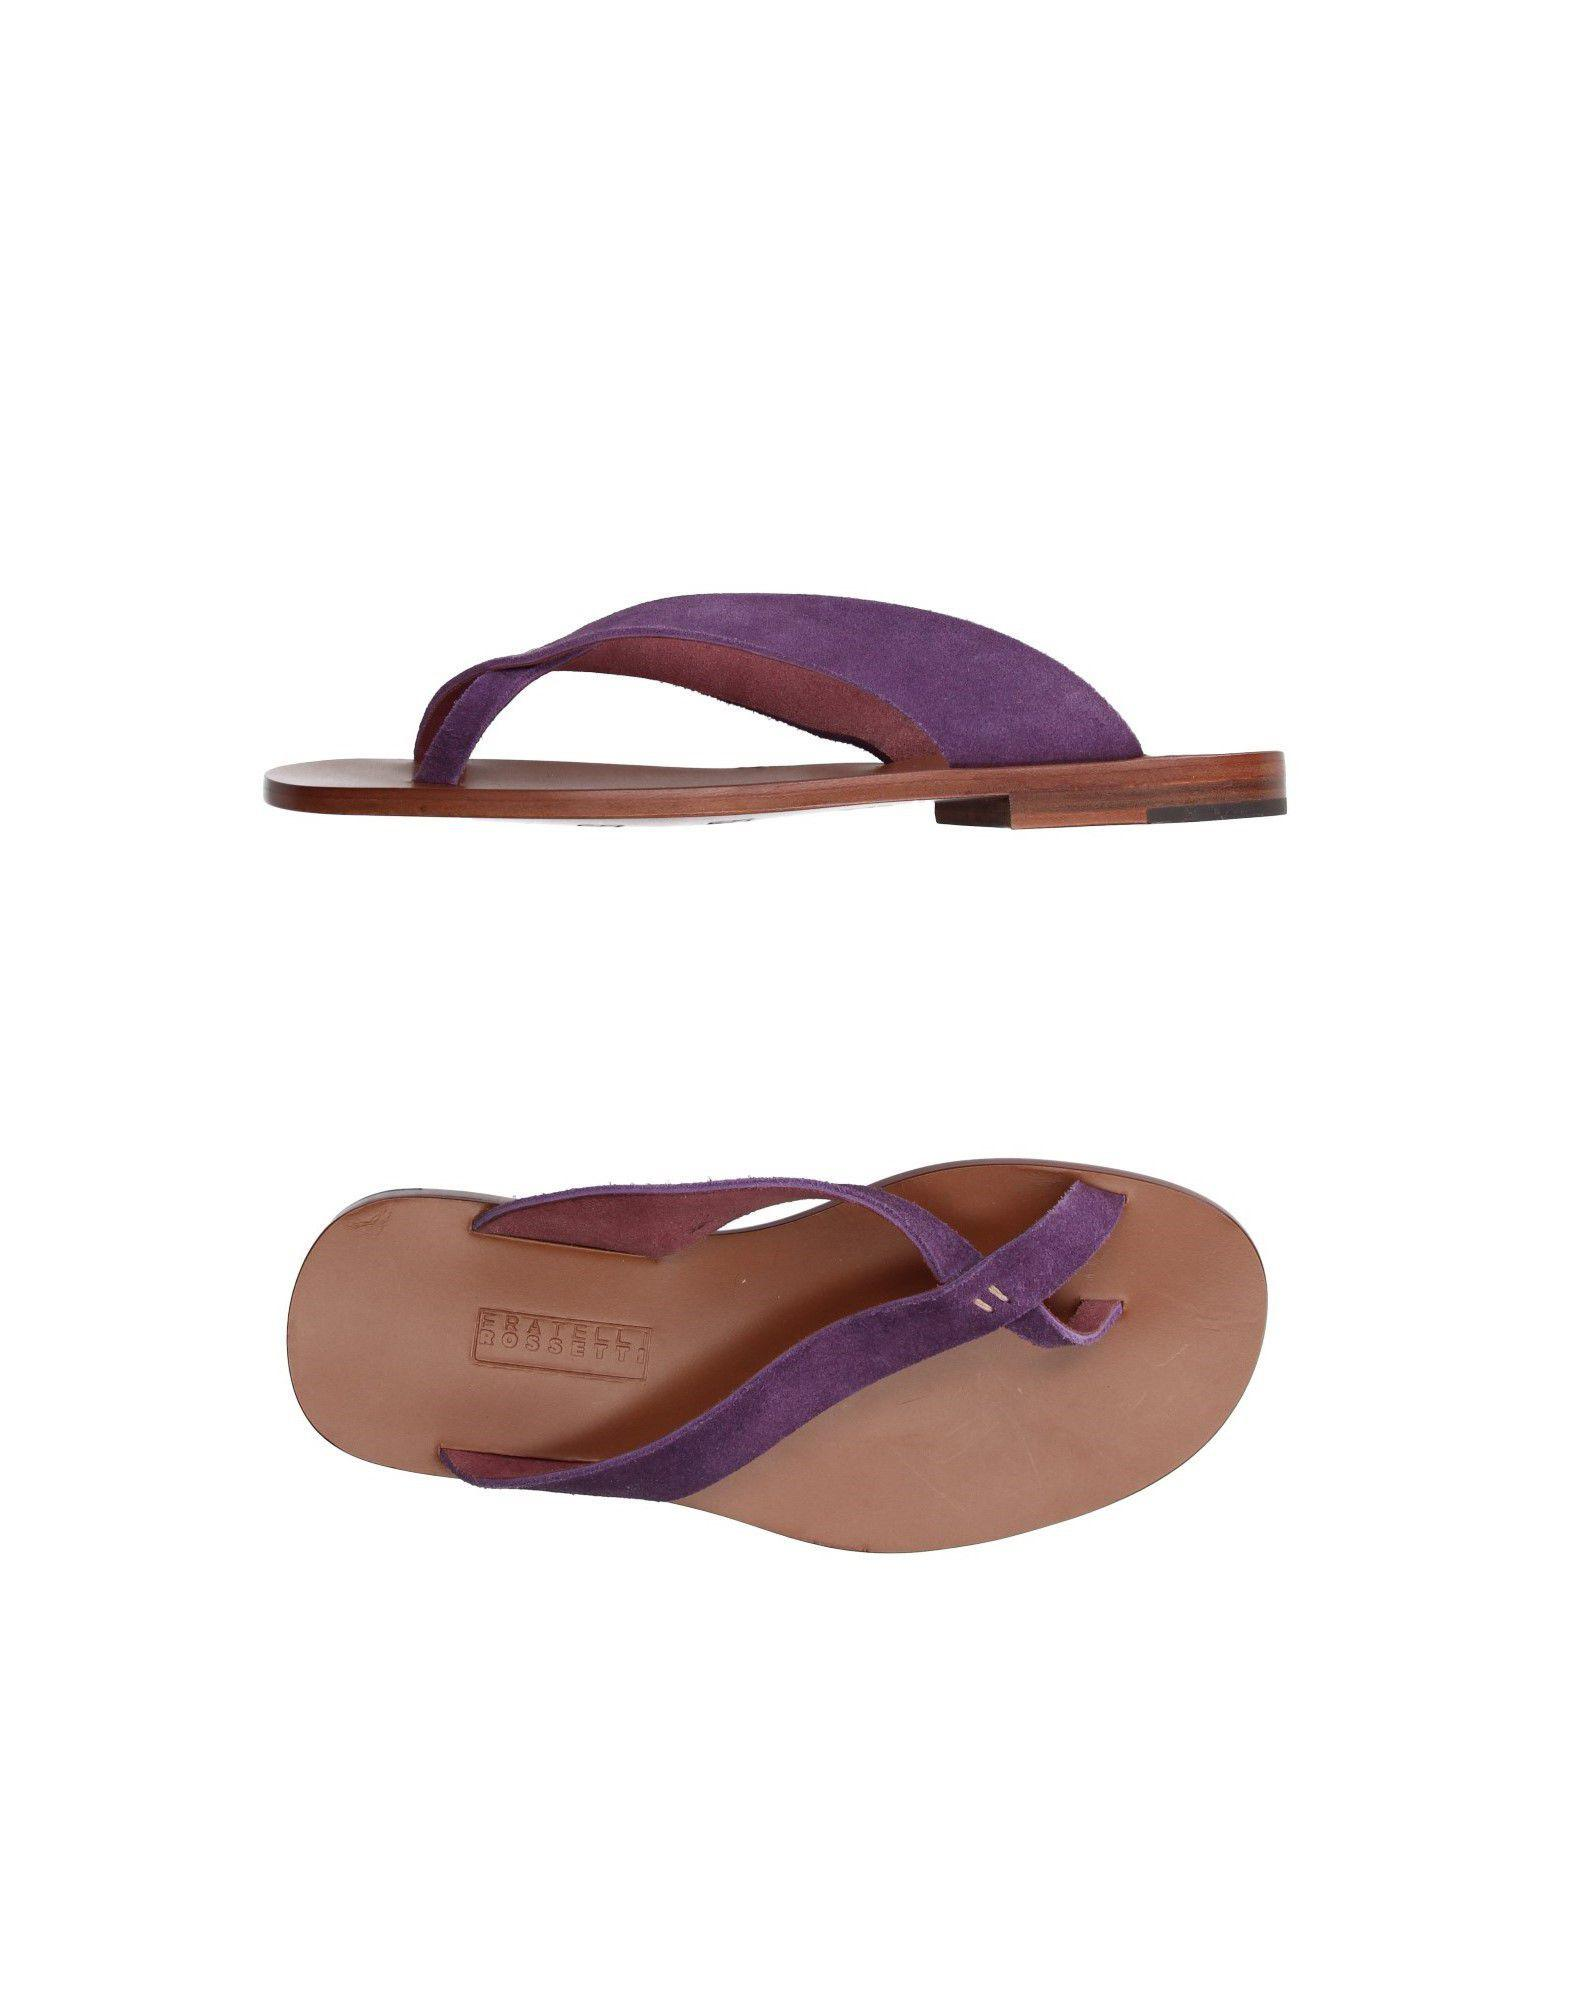 https://cdnc.lystit.com/photos/yoox/3c45846b/fratelli-rossetti-Purple-Toe-Post-Sandal.jpeg